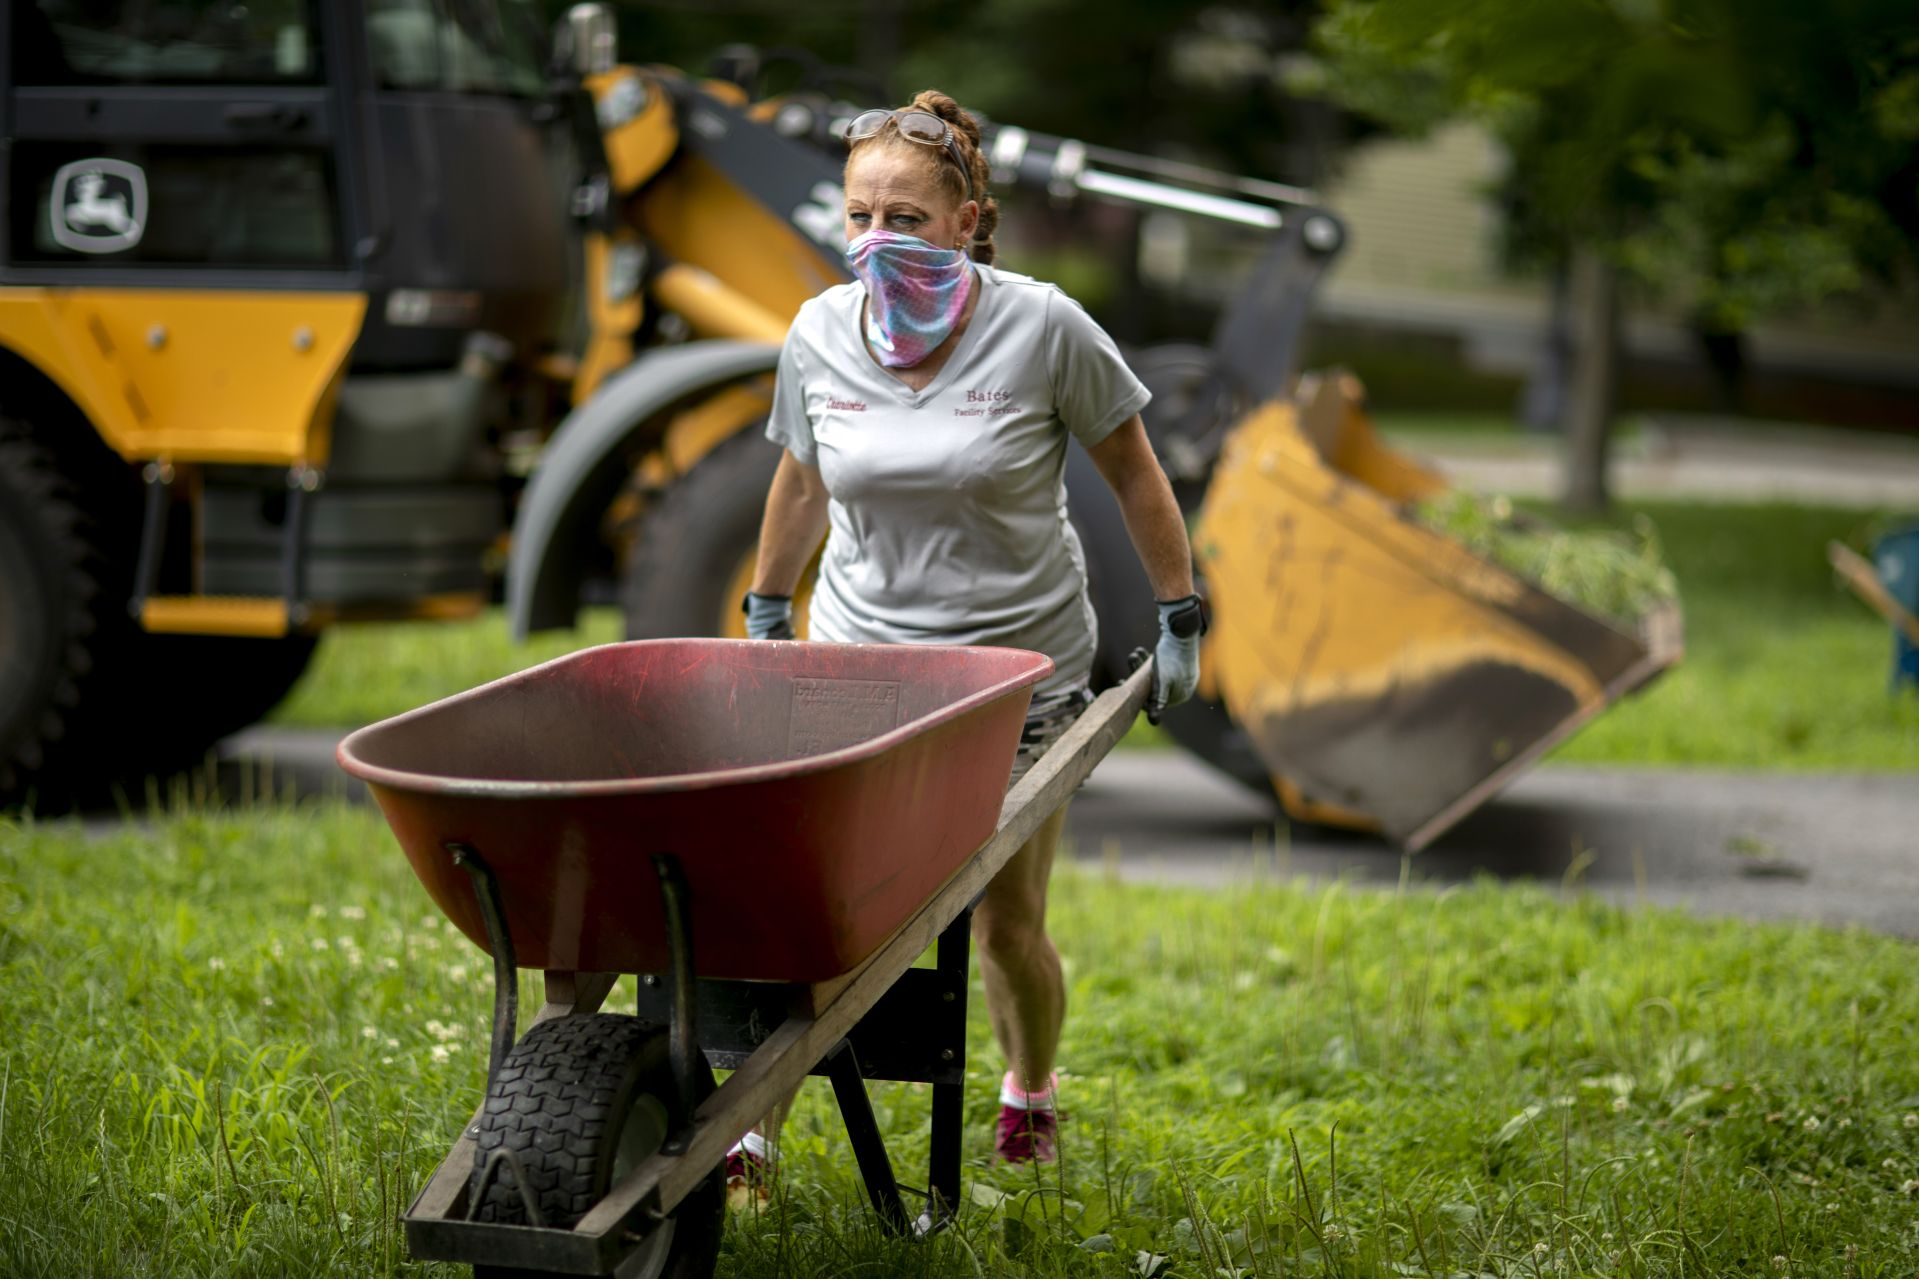 Charlotte I. Barrettcbarrett@bates.eduCustodianFacility Services207-786-8356Cutten Maintenance CenterA Facility Services crew, composed of groundskeepers and custodians, are mulching the beds around campus. Today, July 13, 2020, they tended to 280 College and Rand Hall.